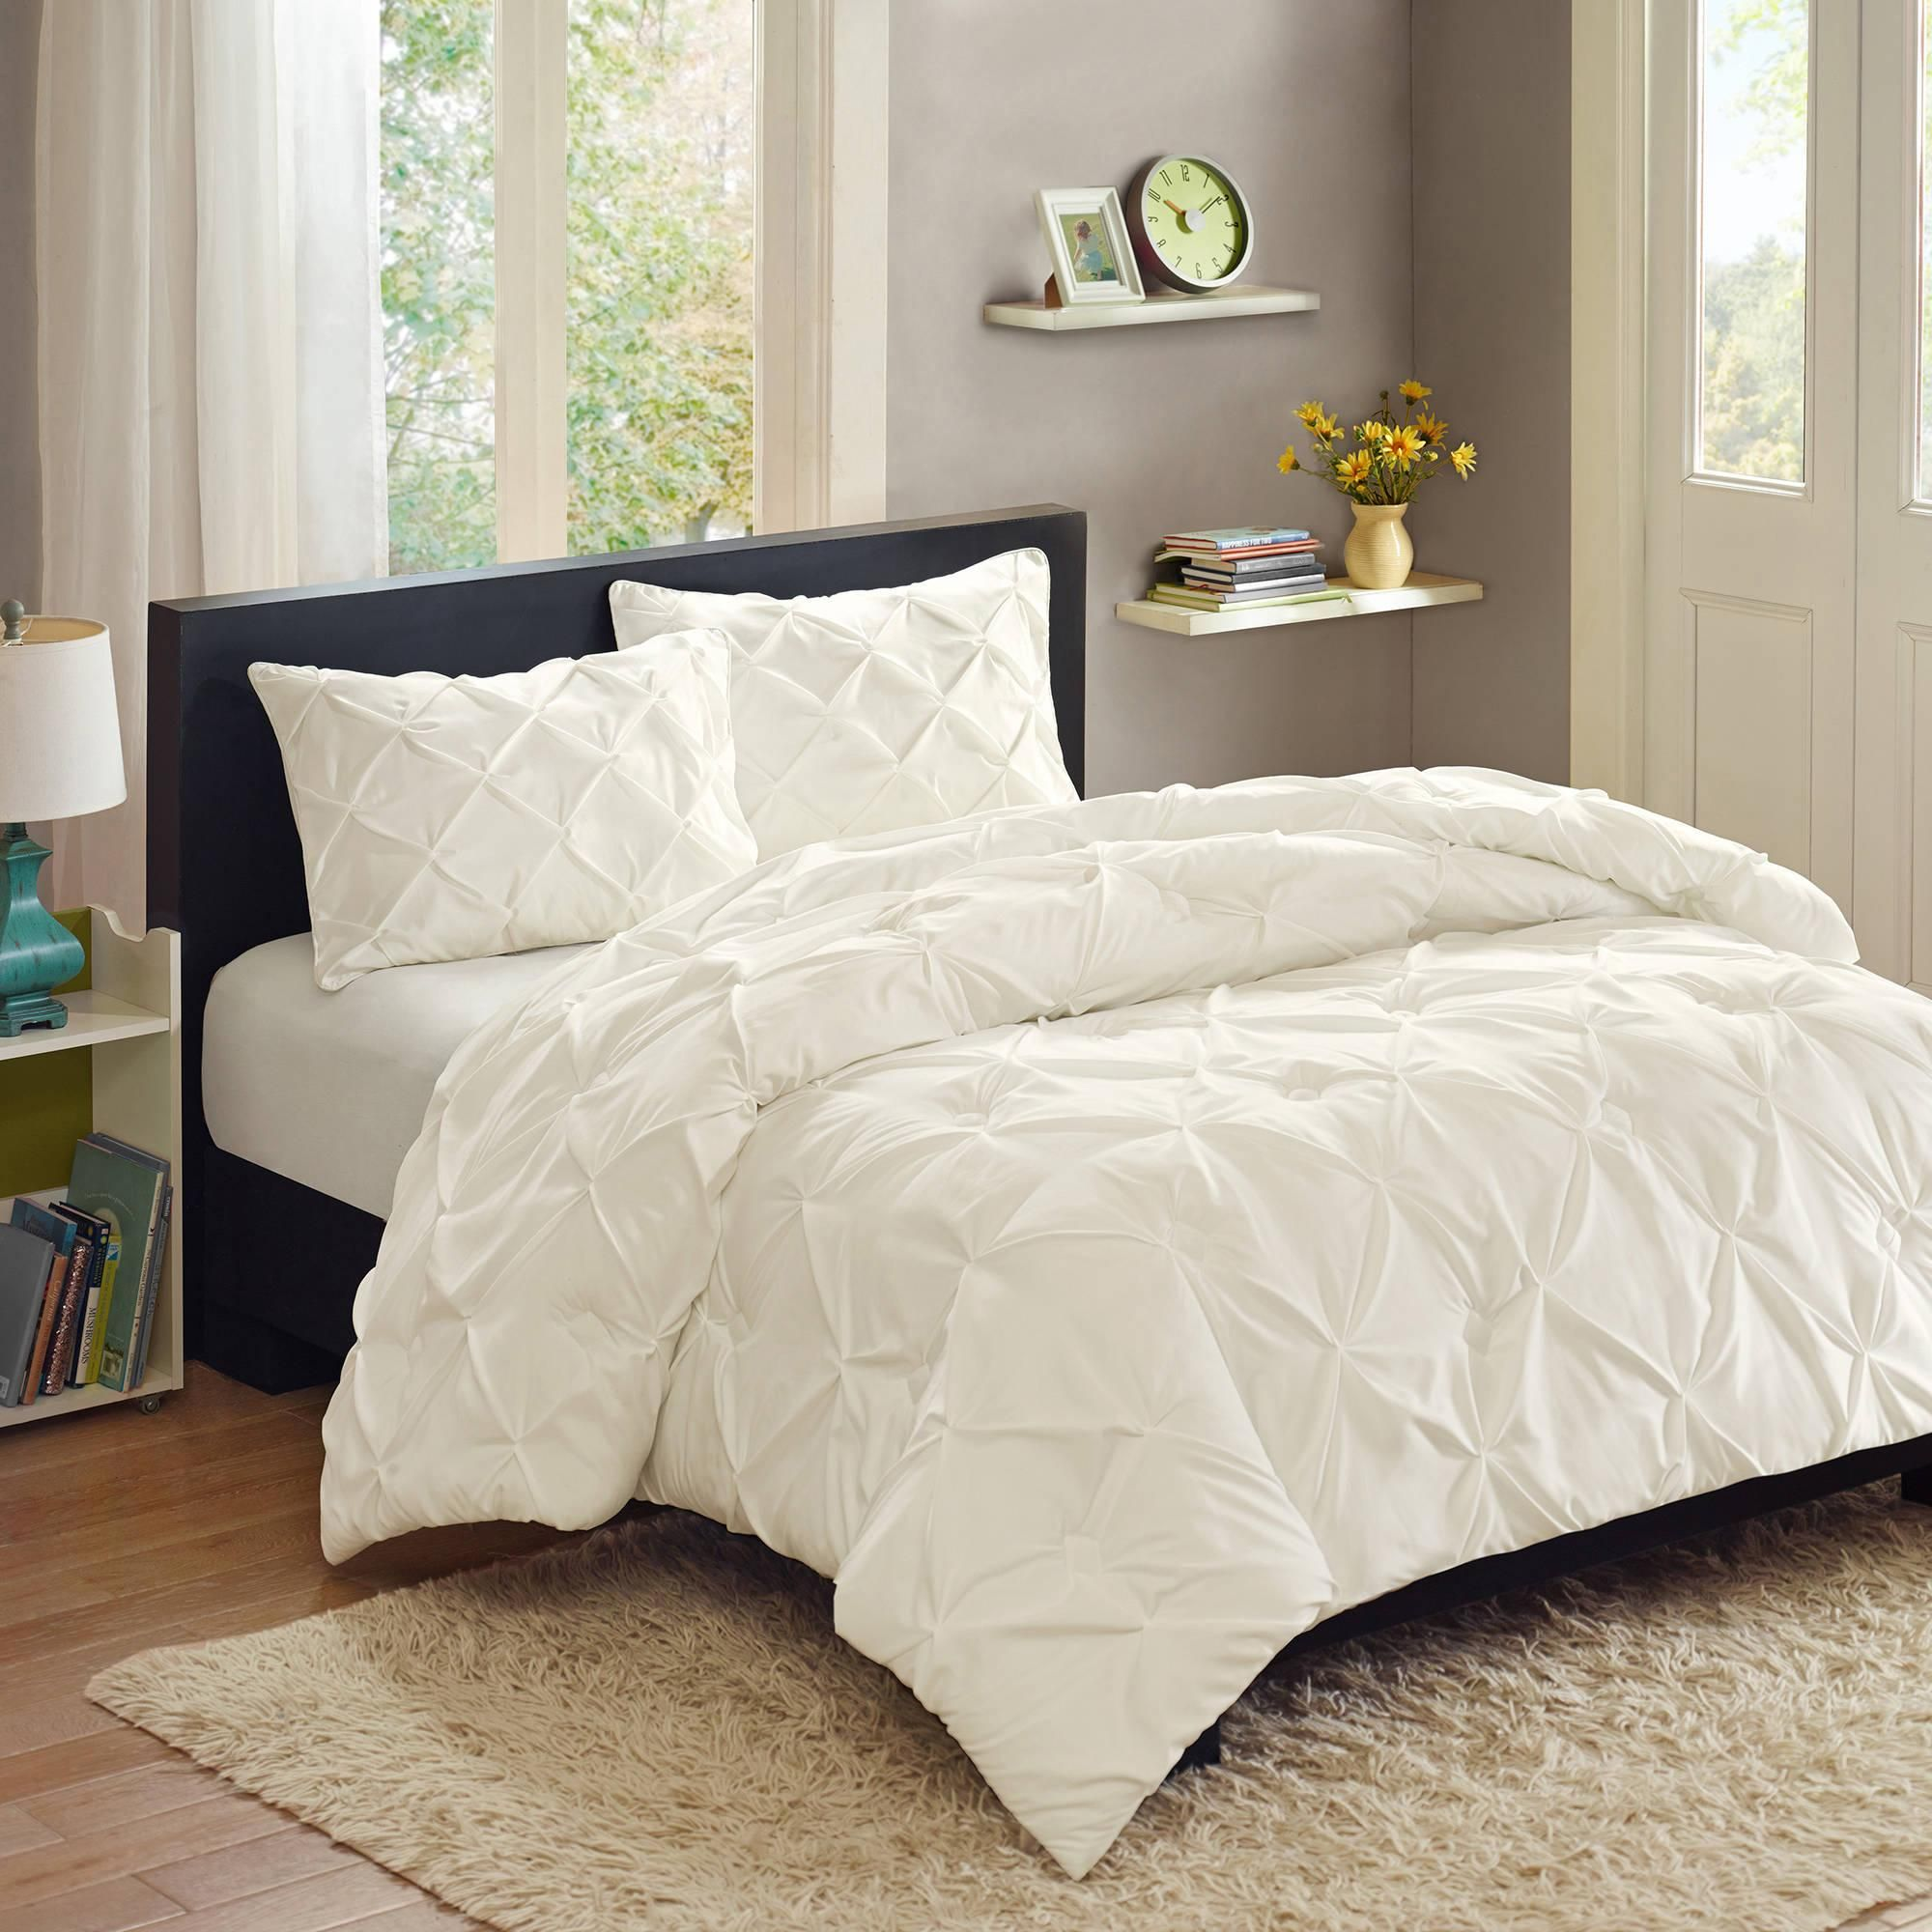 Better Homes and Gardens Pintuck Bedding Comforter Mini Set ...